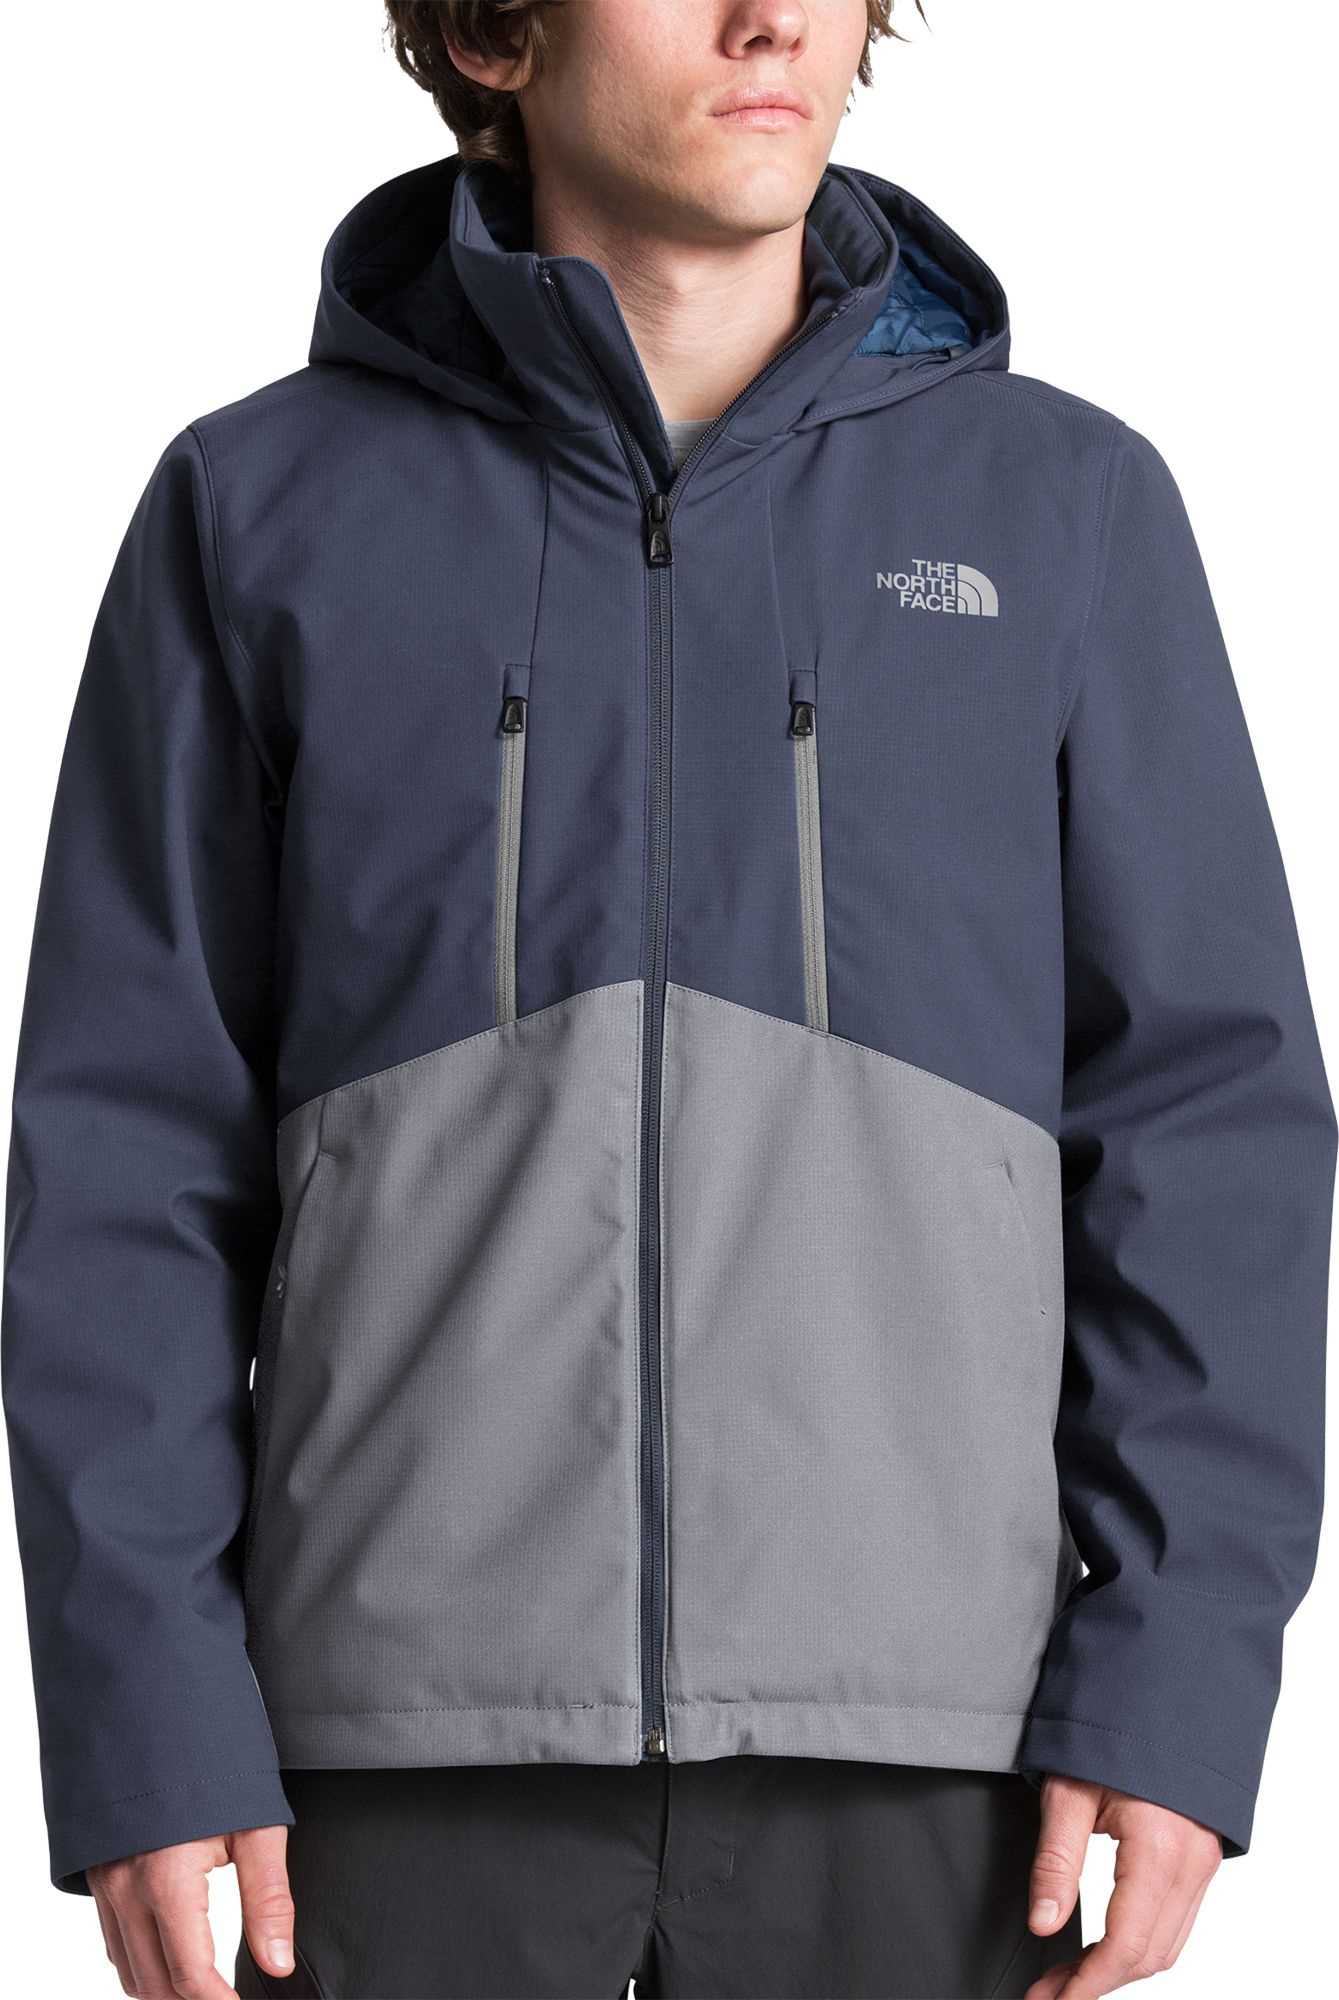 the north face men s apex elevation jacket best price guarantee at rh dickssportinggoods com